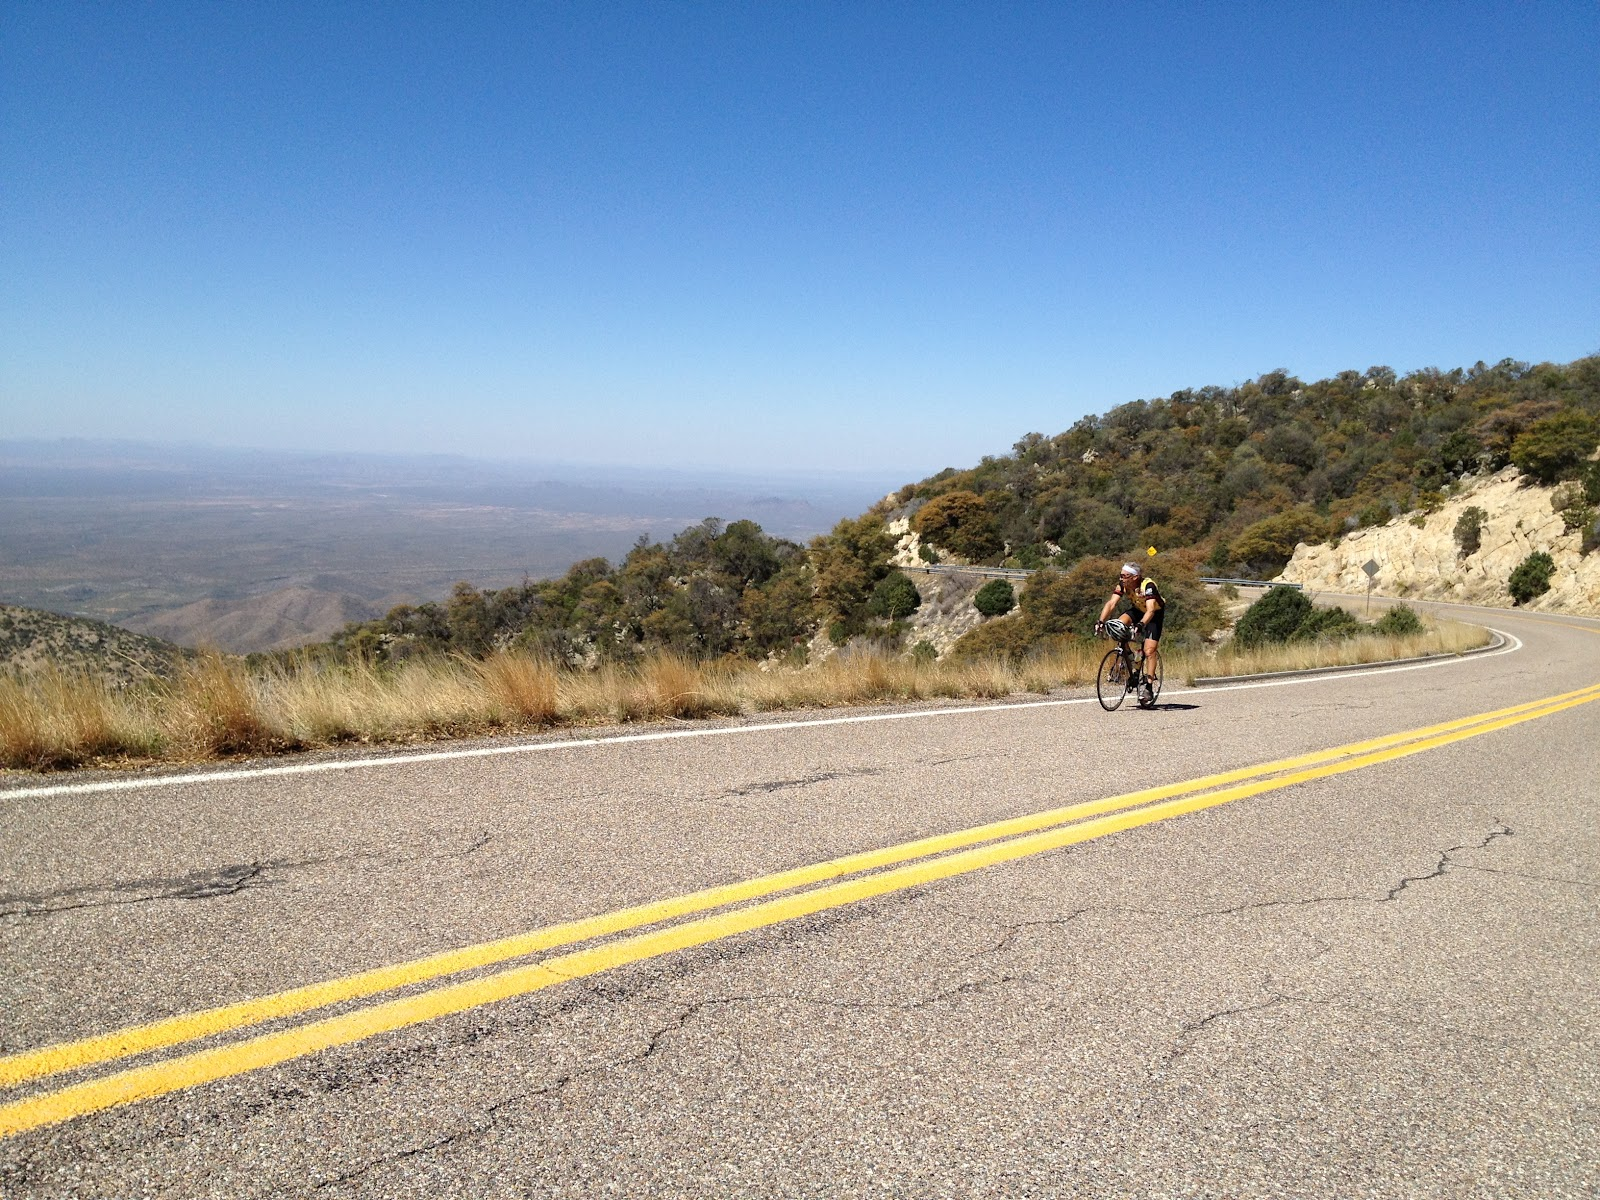 Climbing Kitt Peak by bike - cyclist on road with Sonoran Desert in background